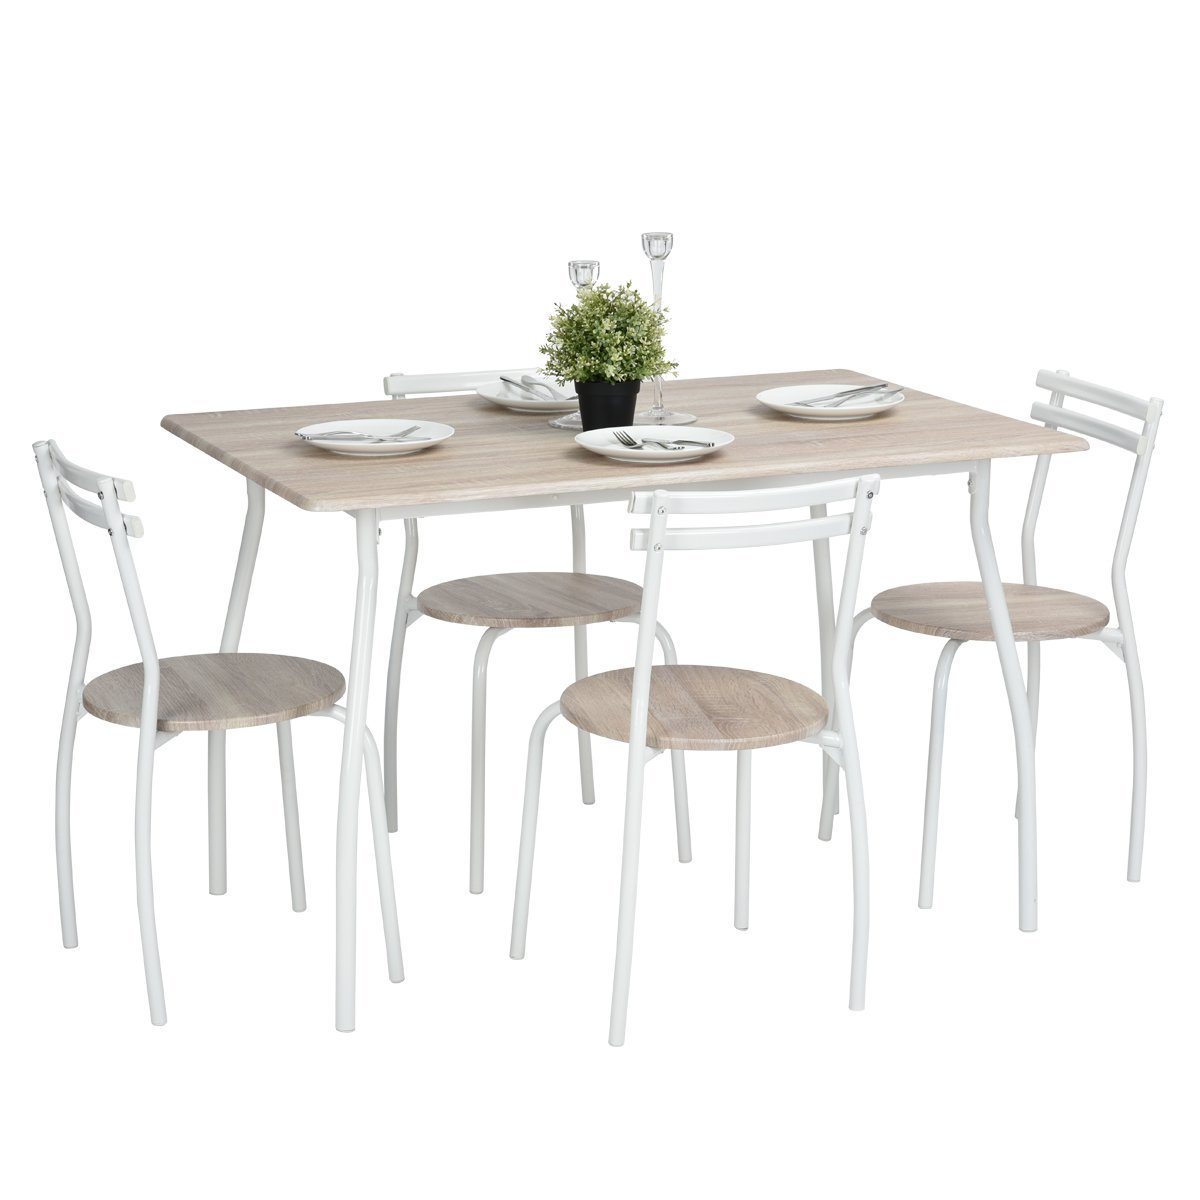 5pcs Dining Table Set Kitchen Furniture Kitchen Table Rectangle Dining Table with 4 Round Dining Chair Dinning Set (Beech Colour) FurnitureR